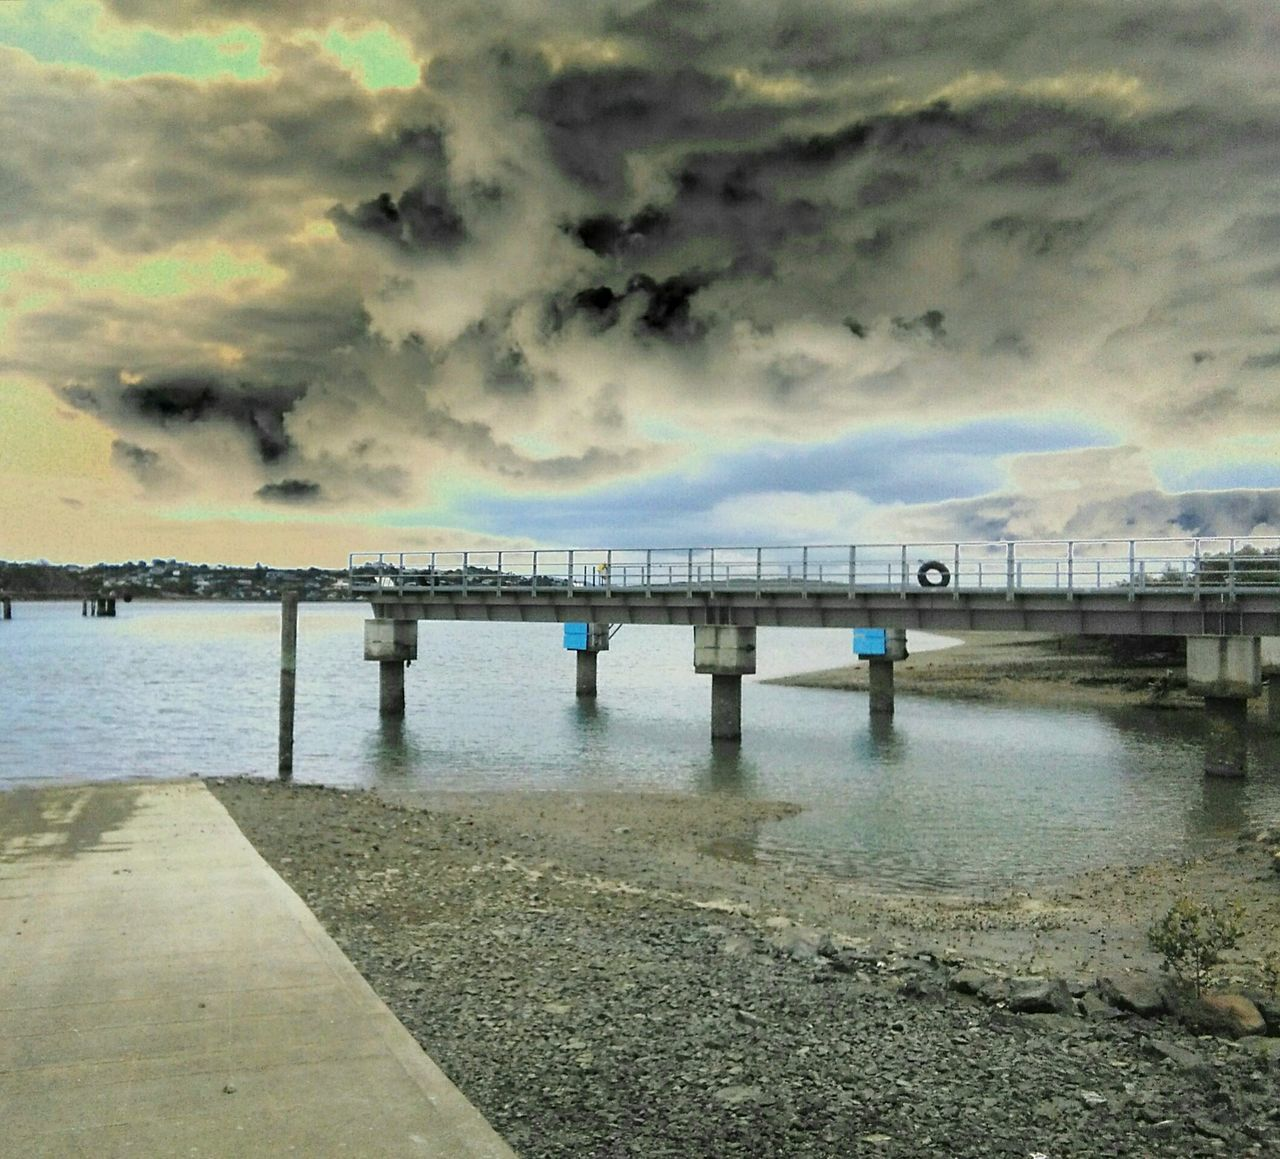 Water Sea Sky Pier Bridge - Man Made Structure Cloud - Sky Outdoors No People Day Stormclouds Weather Photography Beauty In Nature Port Whangarei New Zealand Nature Scenics Waterfront Clouds And Sky Angry Storm